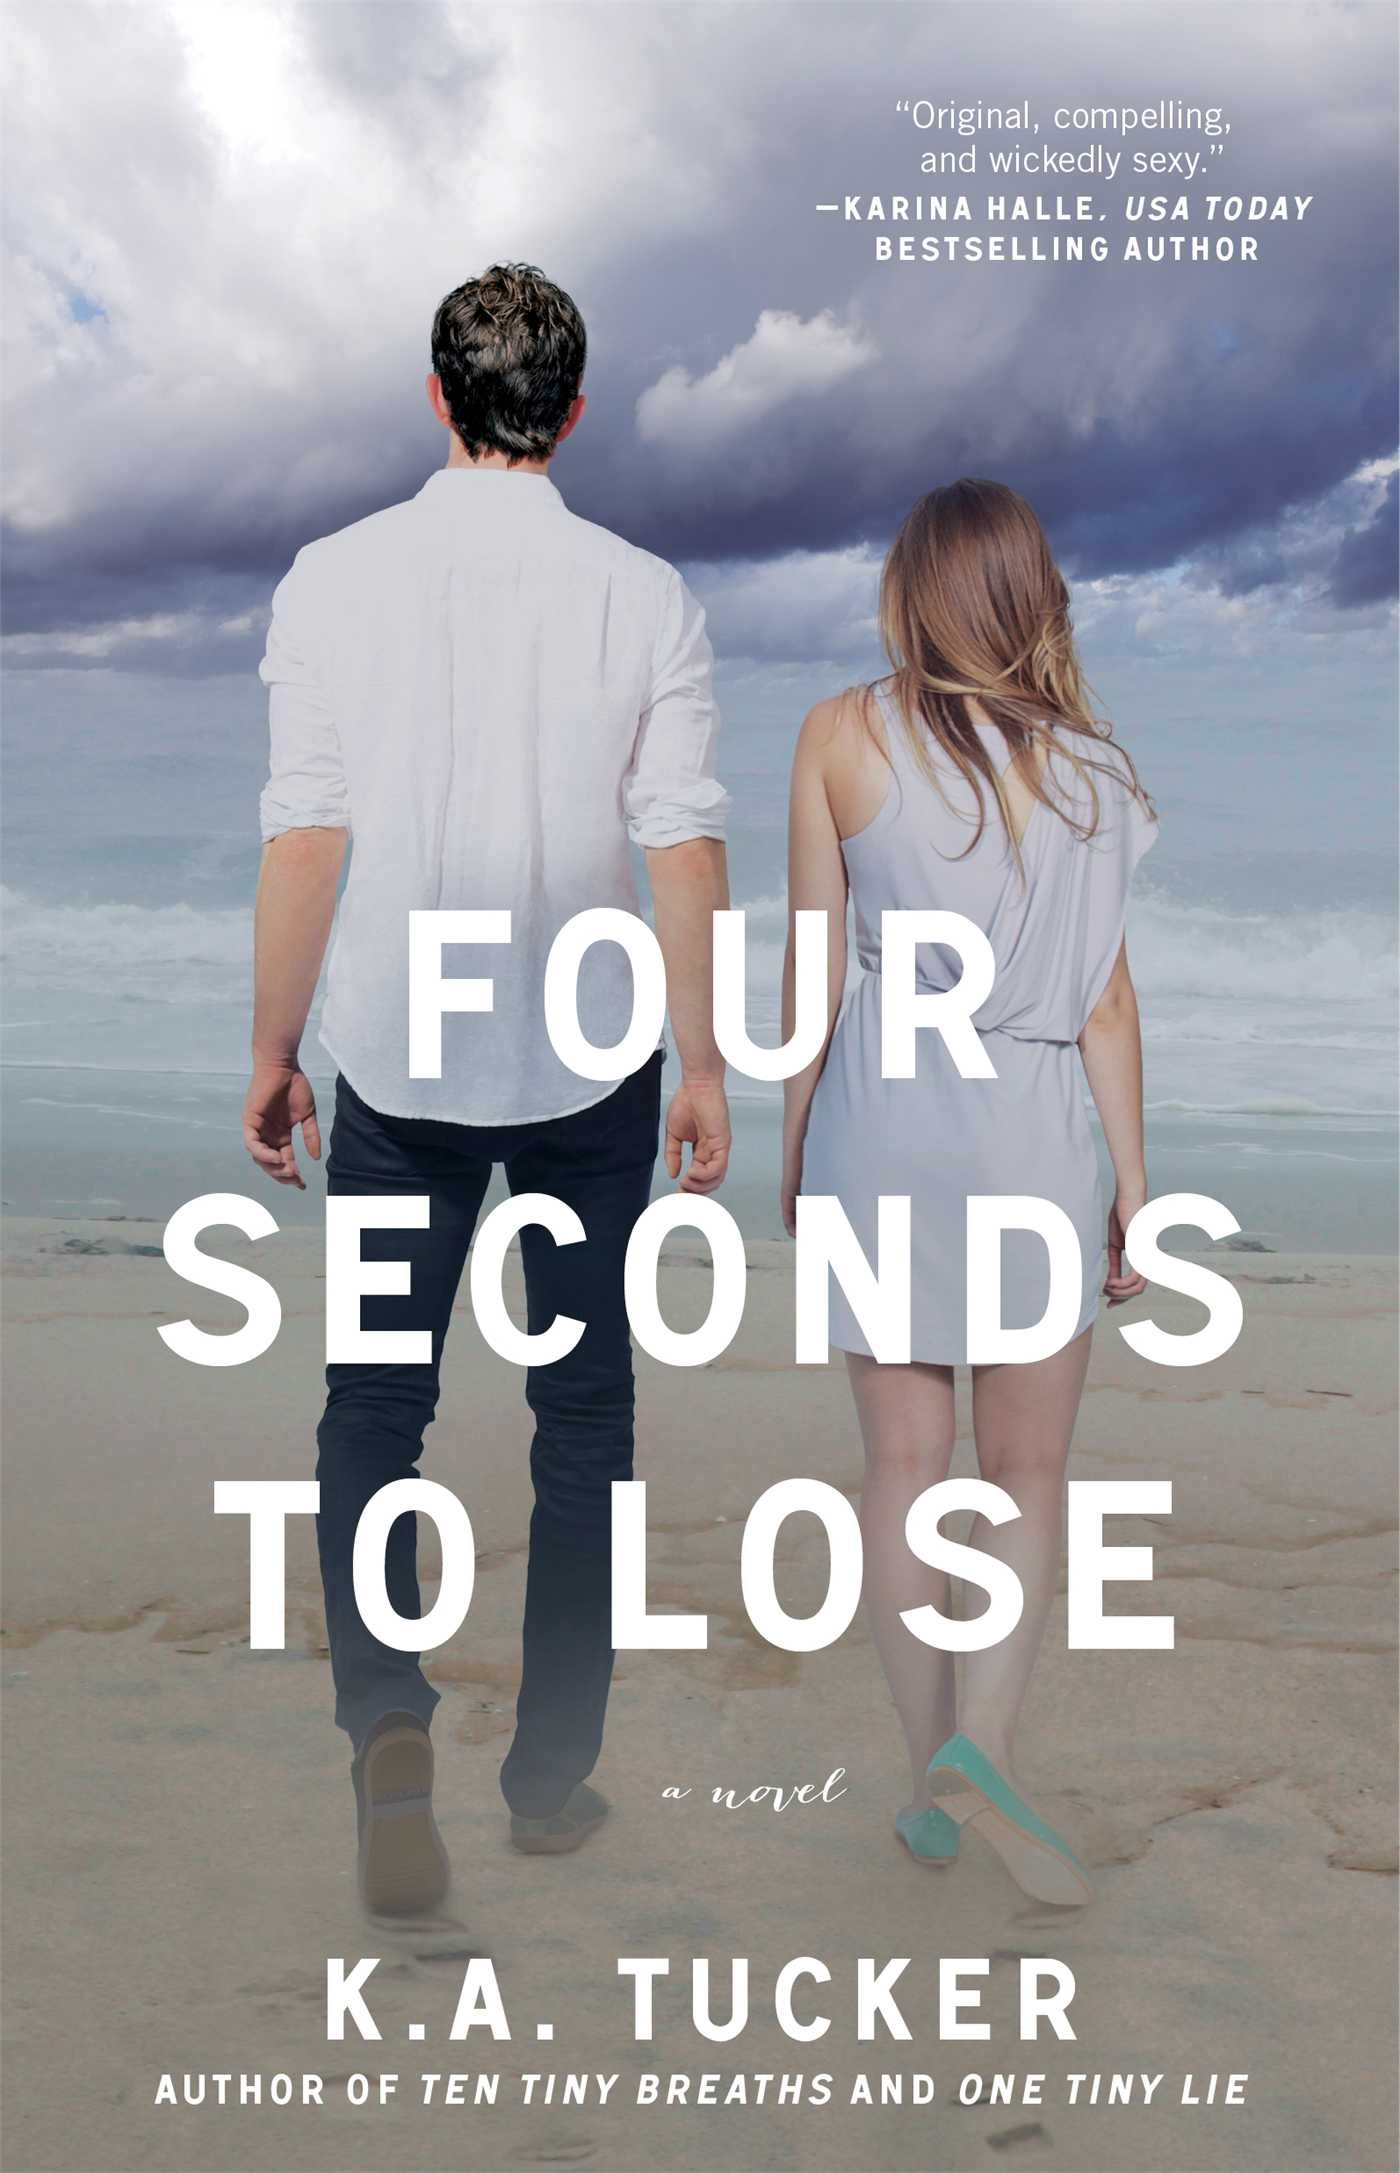 Four Seconds to Lose: A Novel (4) (The Ten Tiny Breaths Series)